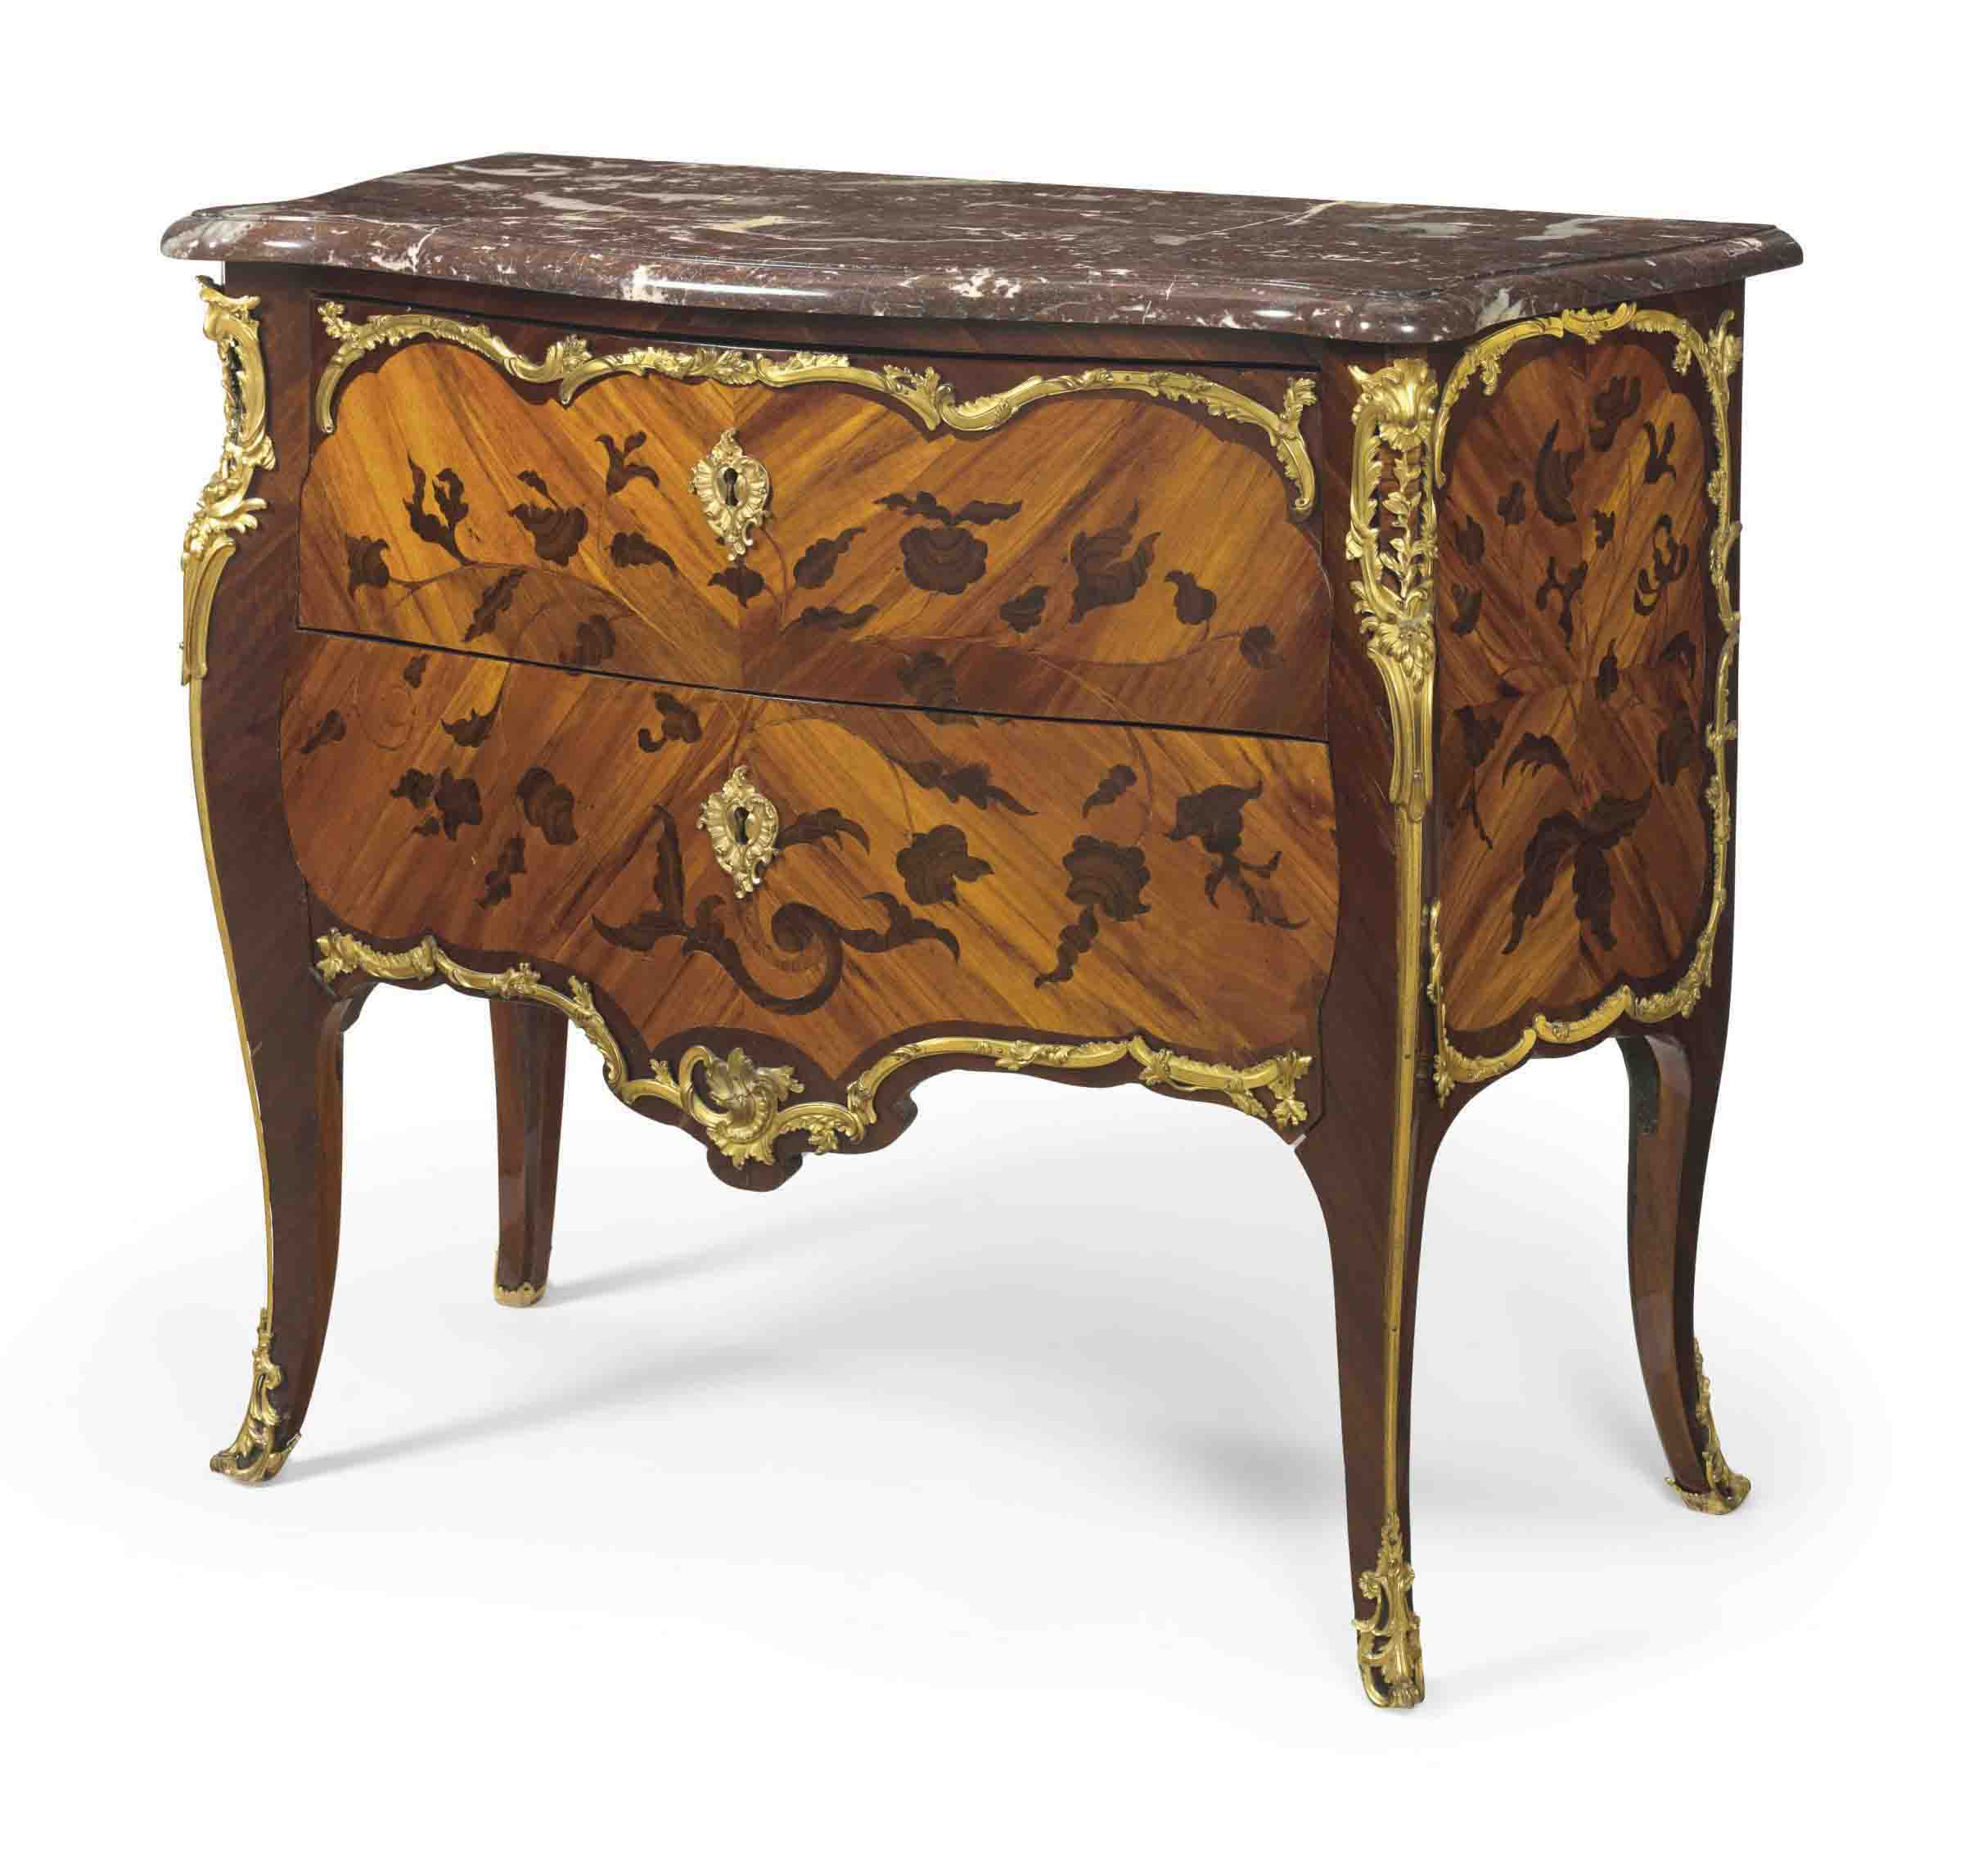 A LOUIS XV ORMOLU-MOUNTED TULIPWOOD AND BOIS DE BOUT MARQUETRY COMMODE